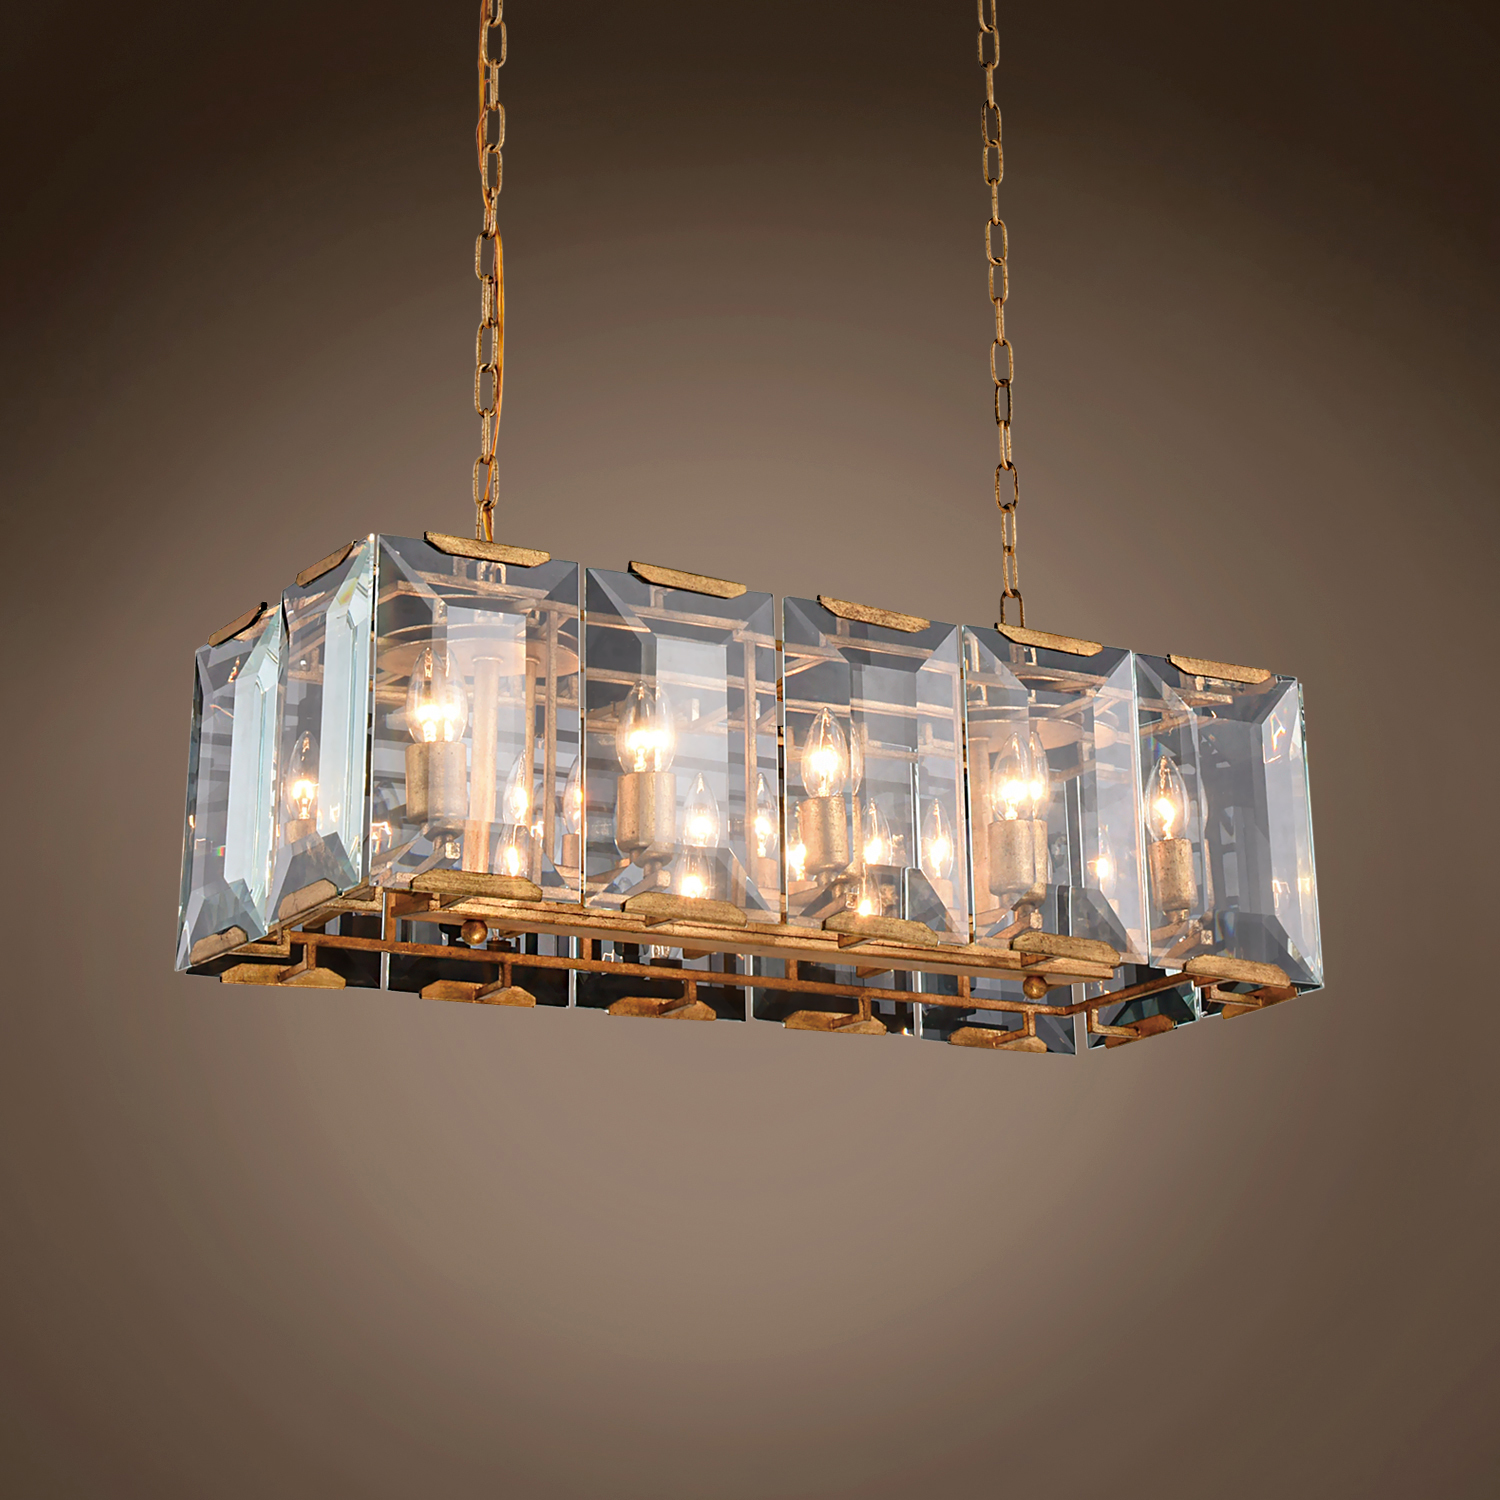 Restoration revolution harlow crystal rectangular 10 light 34 quick view arubaitofo Choice Image